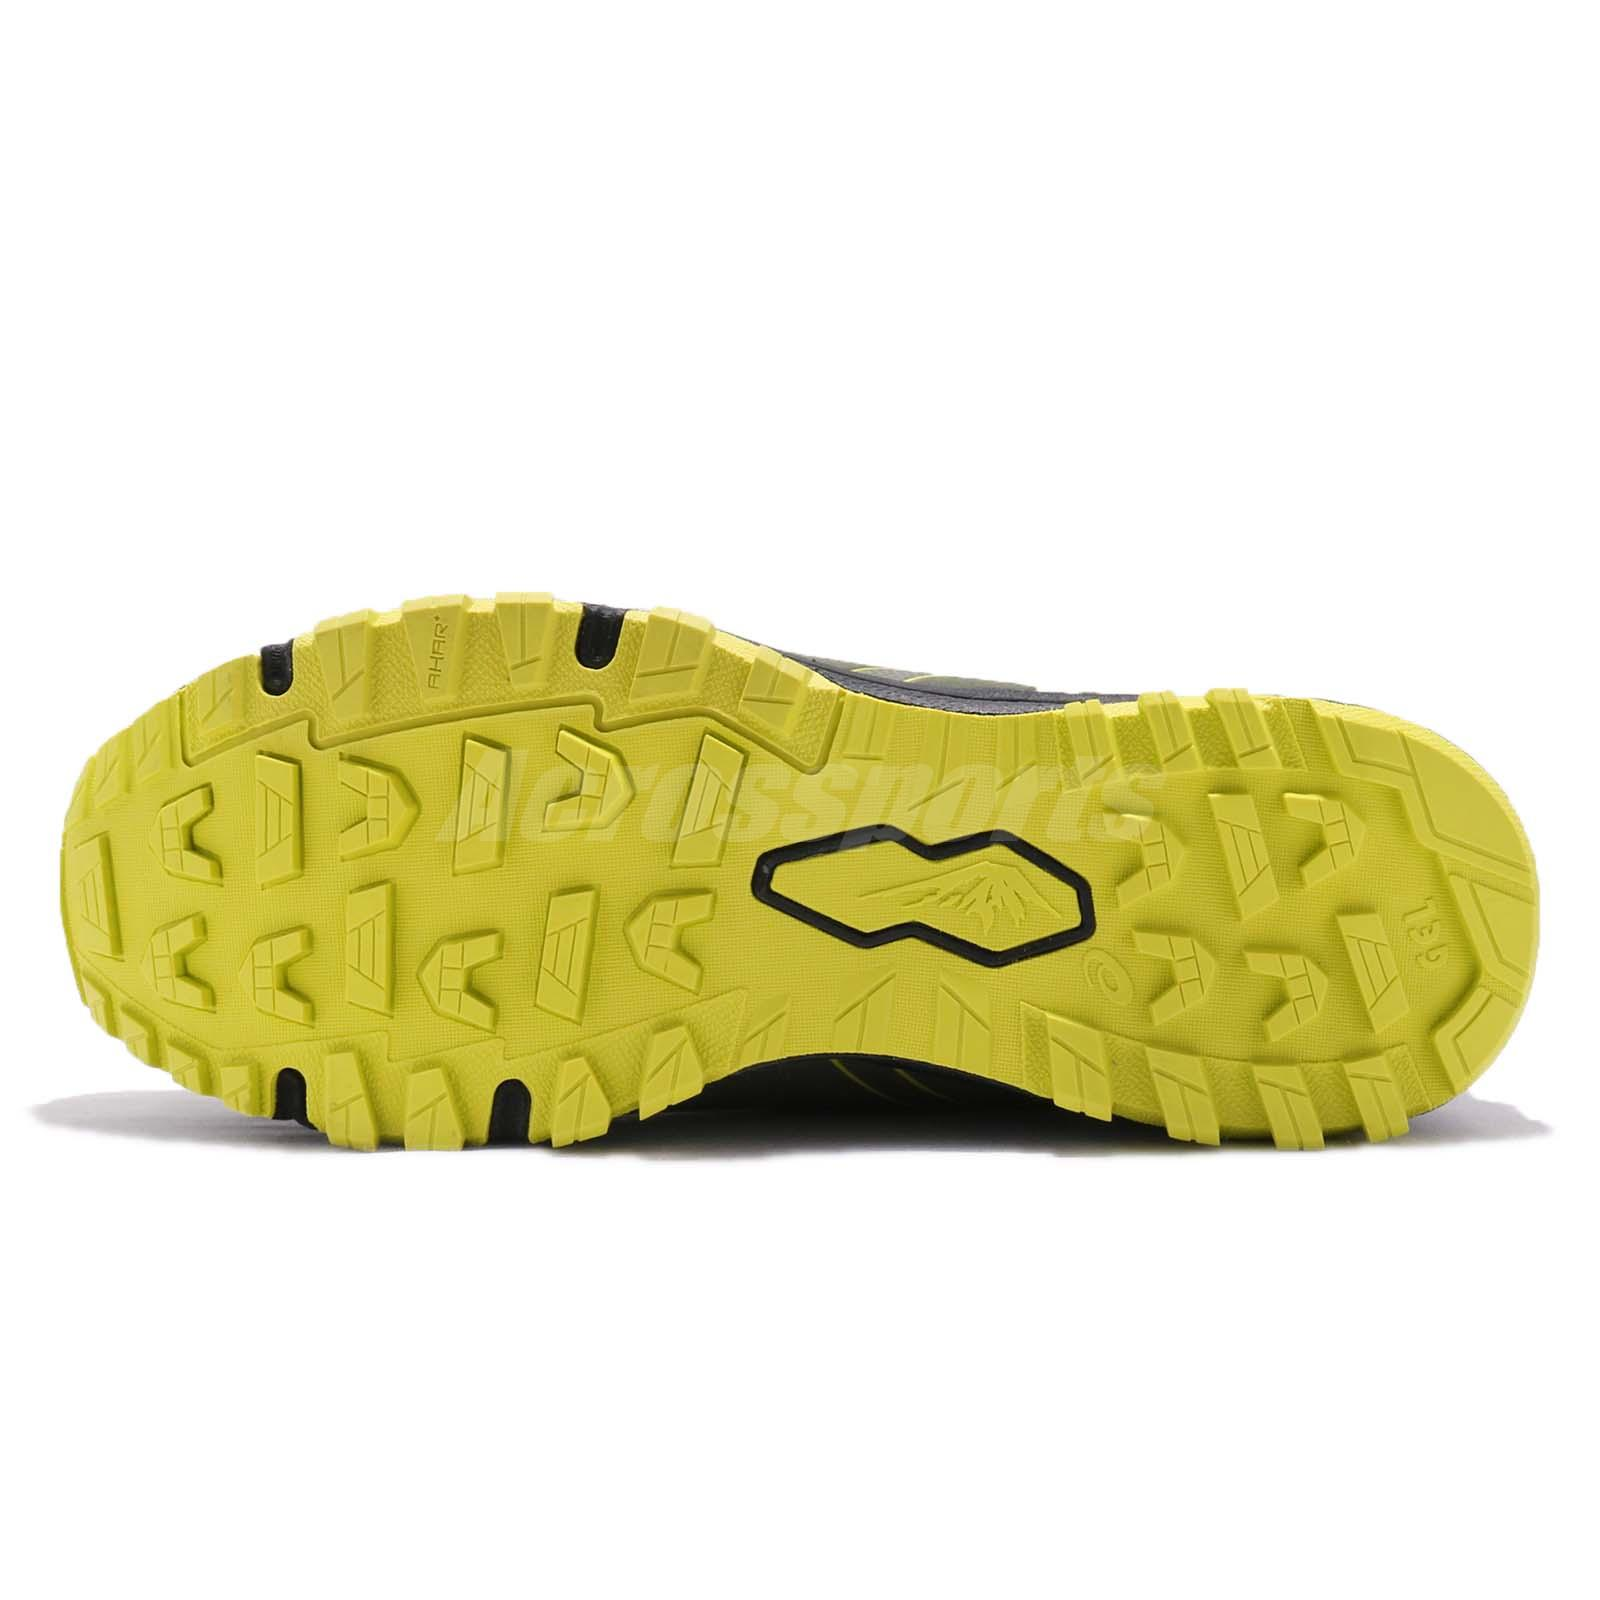 98d4af34cf376 Details about Asics Gel-FujiRado Laceless Green Black Yellow Men Trail  Running Shoe T7F2N-8189